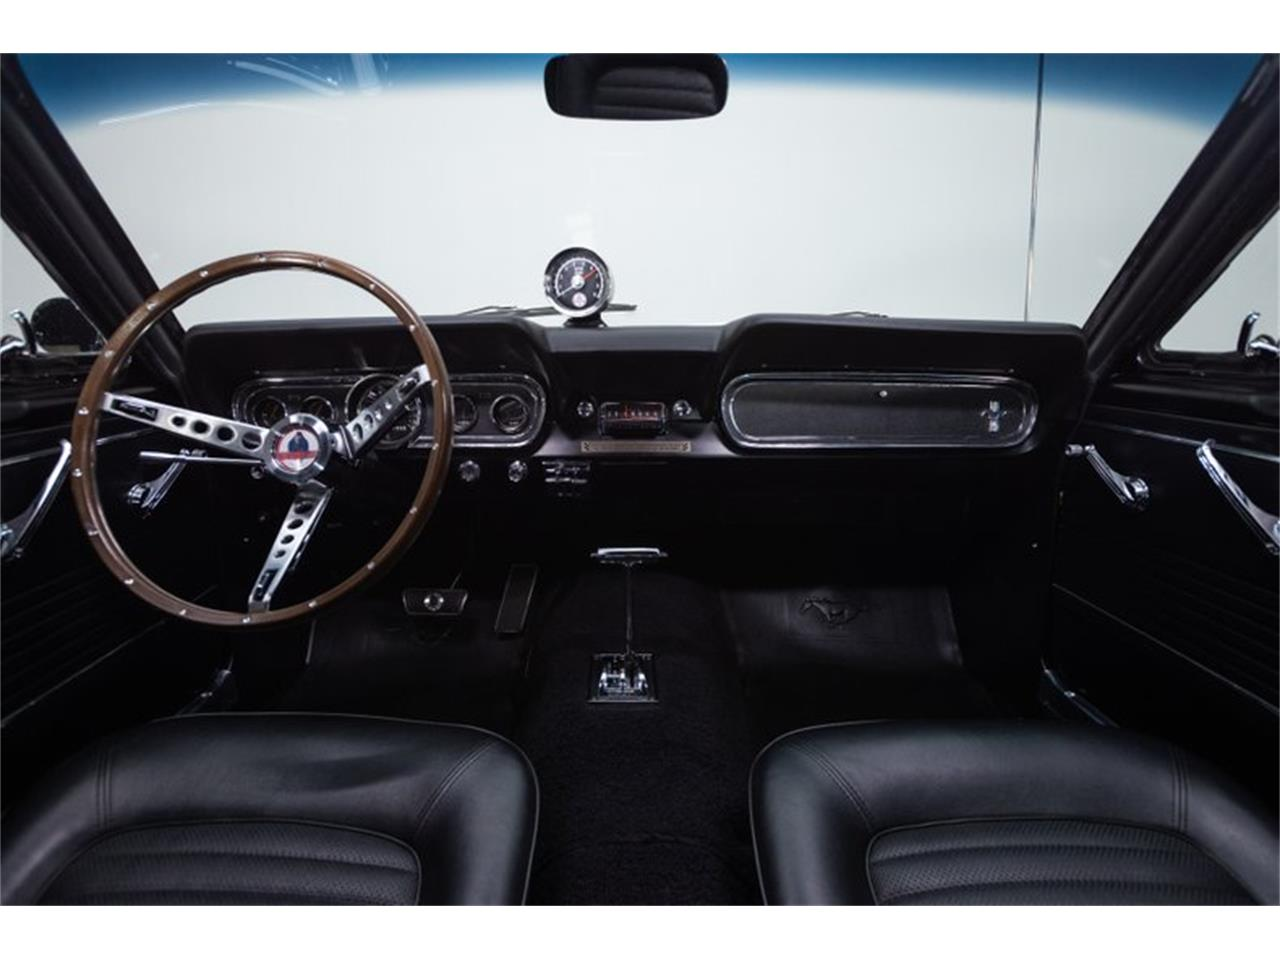 Large Picture of 1966 Ford Mustang located in Charlotte North Carolina - $189,900.00 - Q2WU